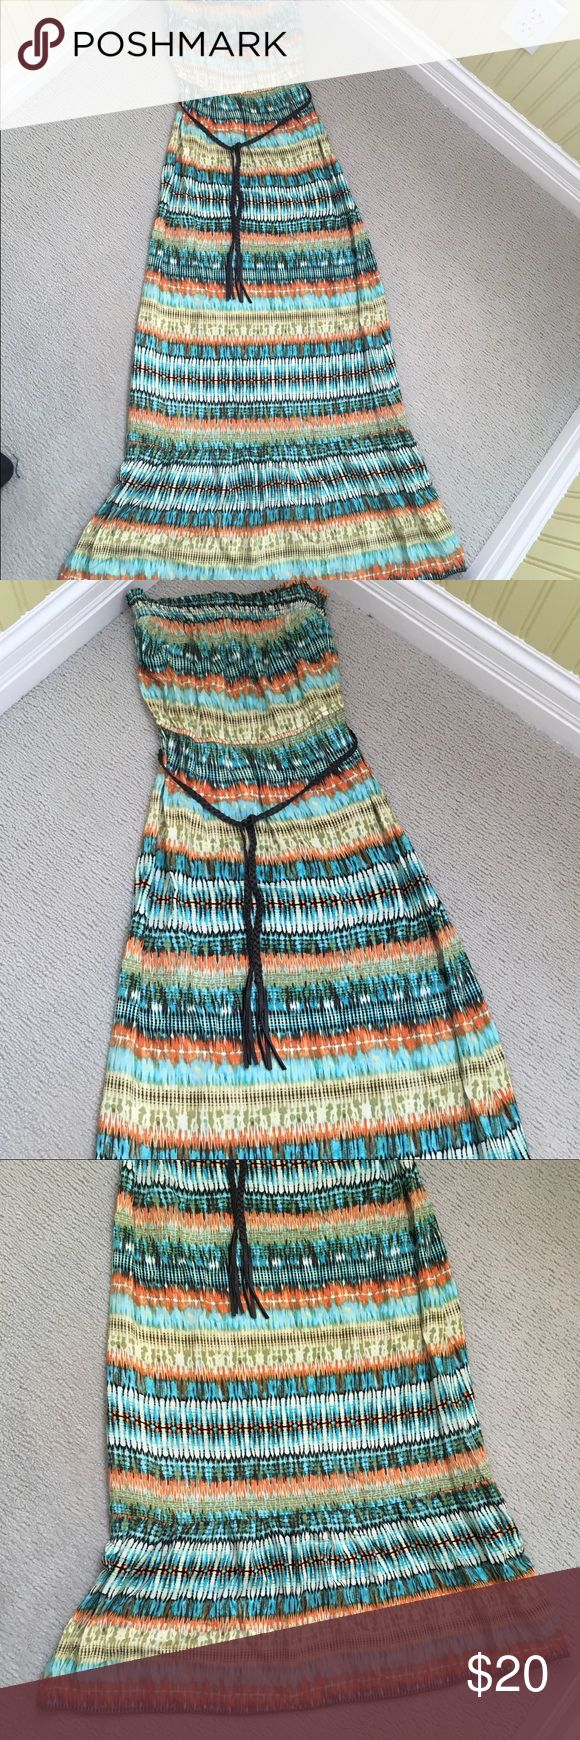 Tribal Maxi Dress This tribal maxi dress includes a leather braided belt, and has an elastic strapless band on the top. Very comfortable. Never worn, excellent condition Speechless Dresses Maxi